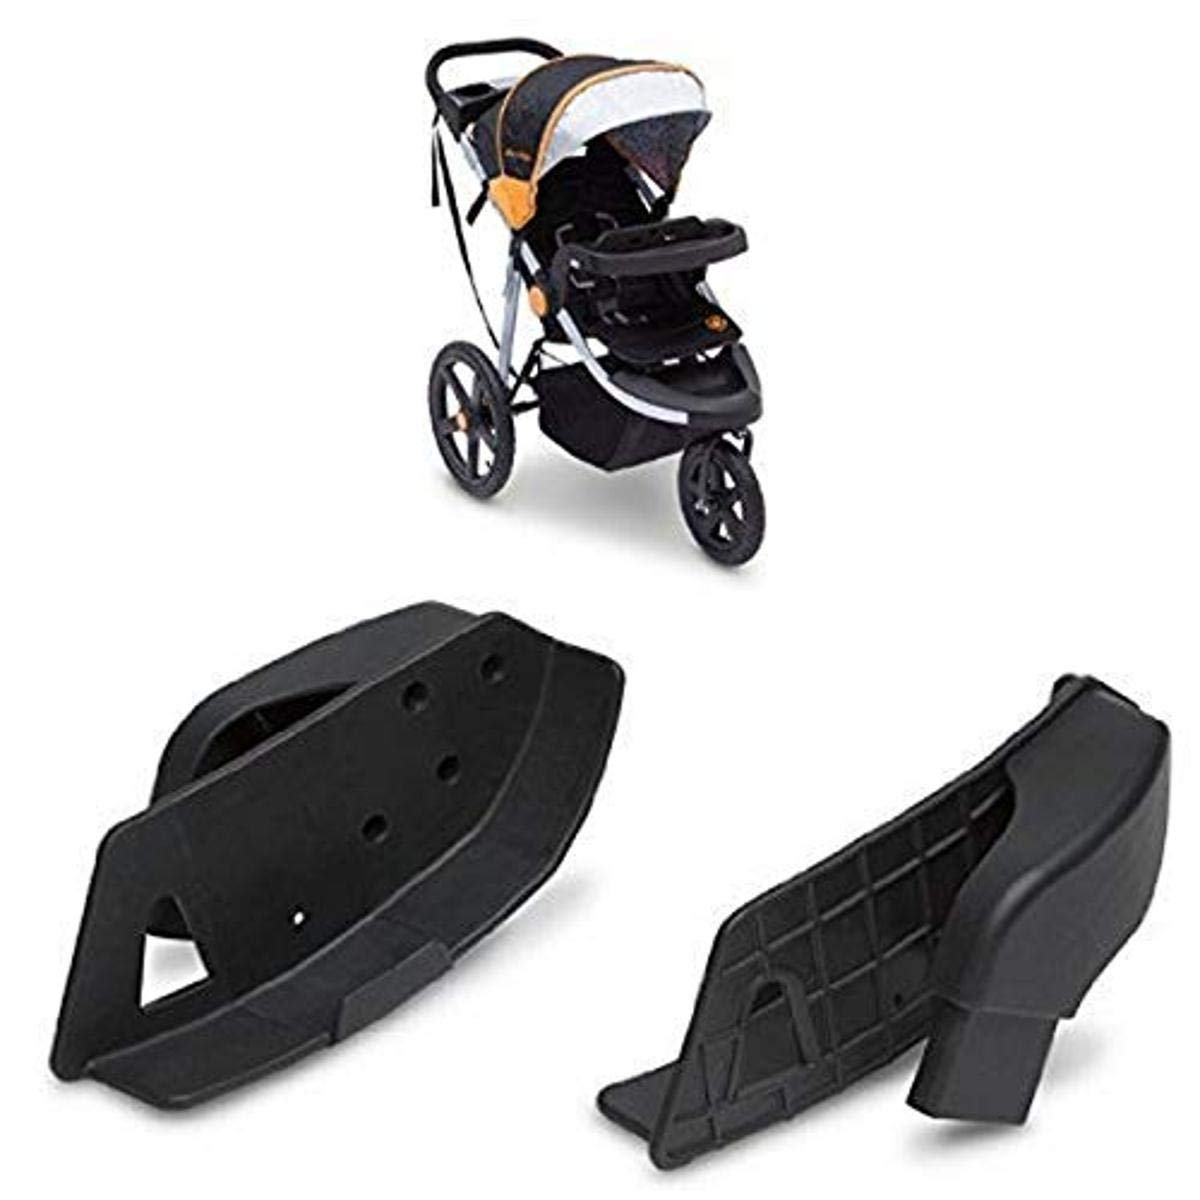 J is for Jeep Brand Adventure All-Terrain Jogging Stroller, Galaxy withChicco Keyfit 30 CarSeatAdapter